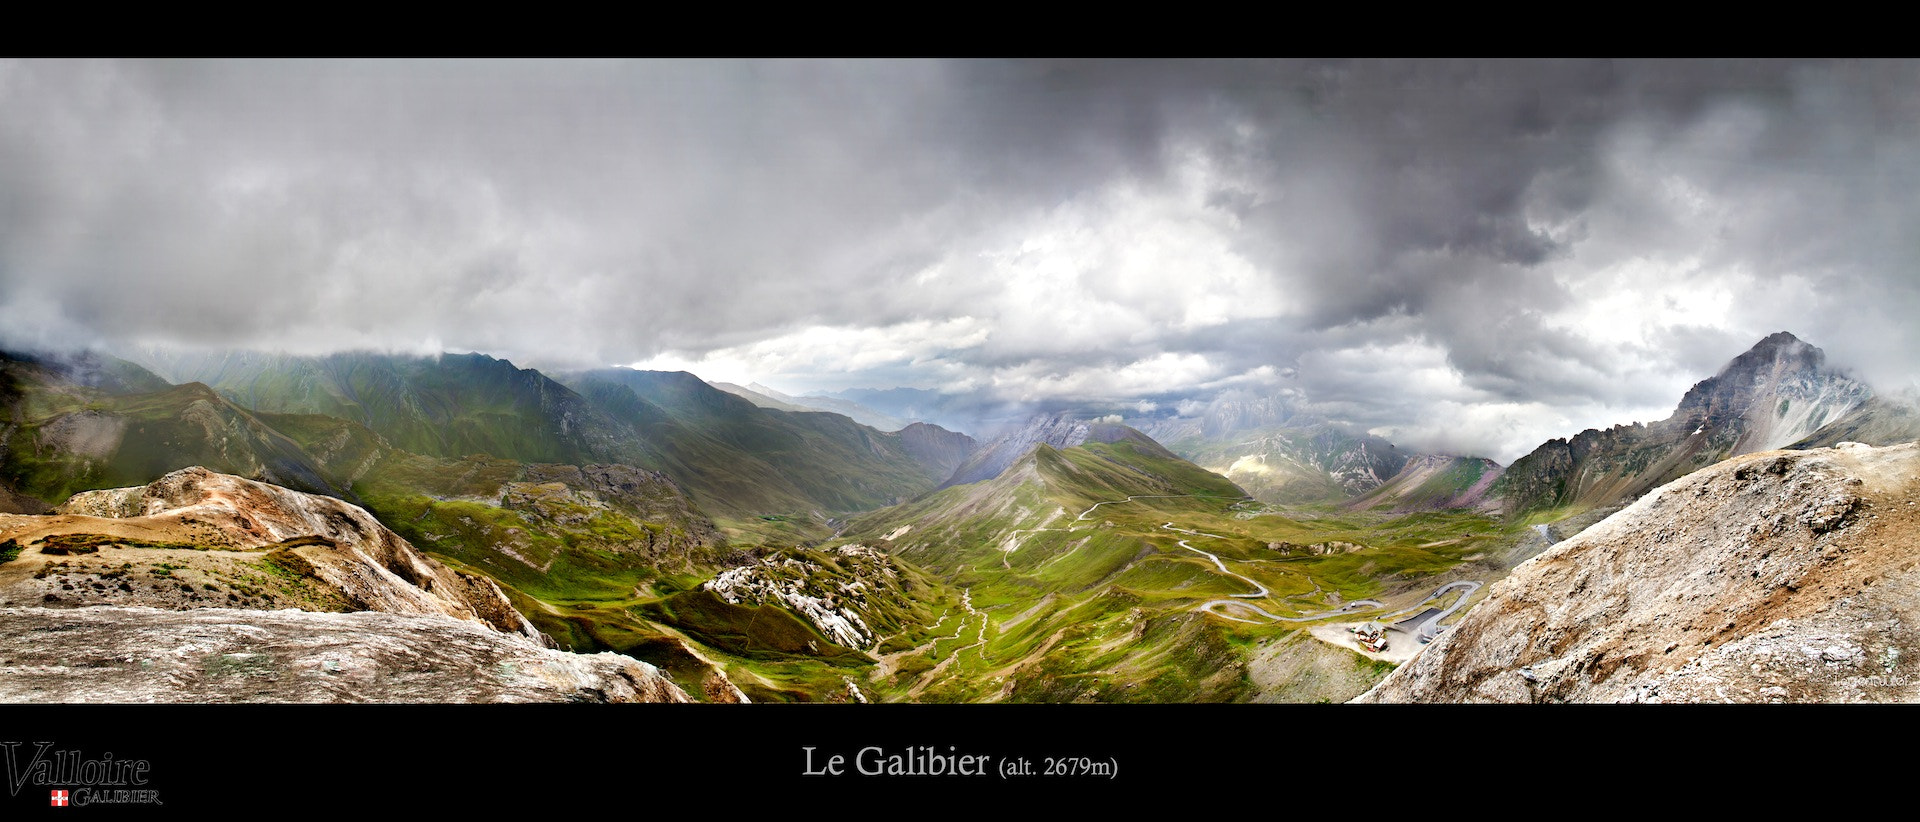 Photograph Scene from the Galibier by Laurent Juillet on 500px